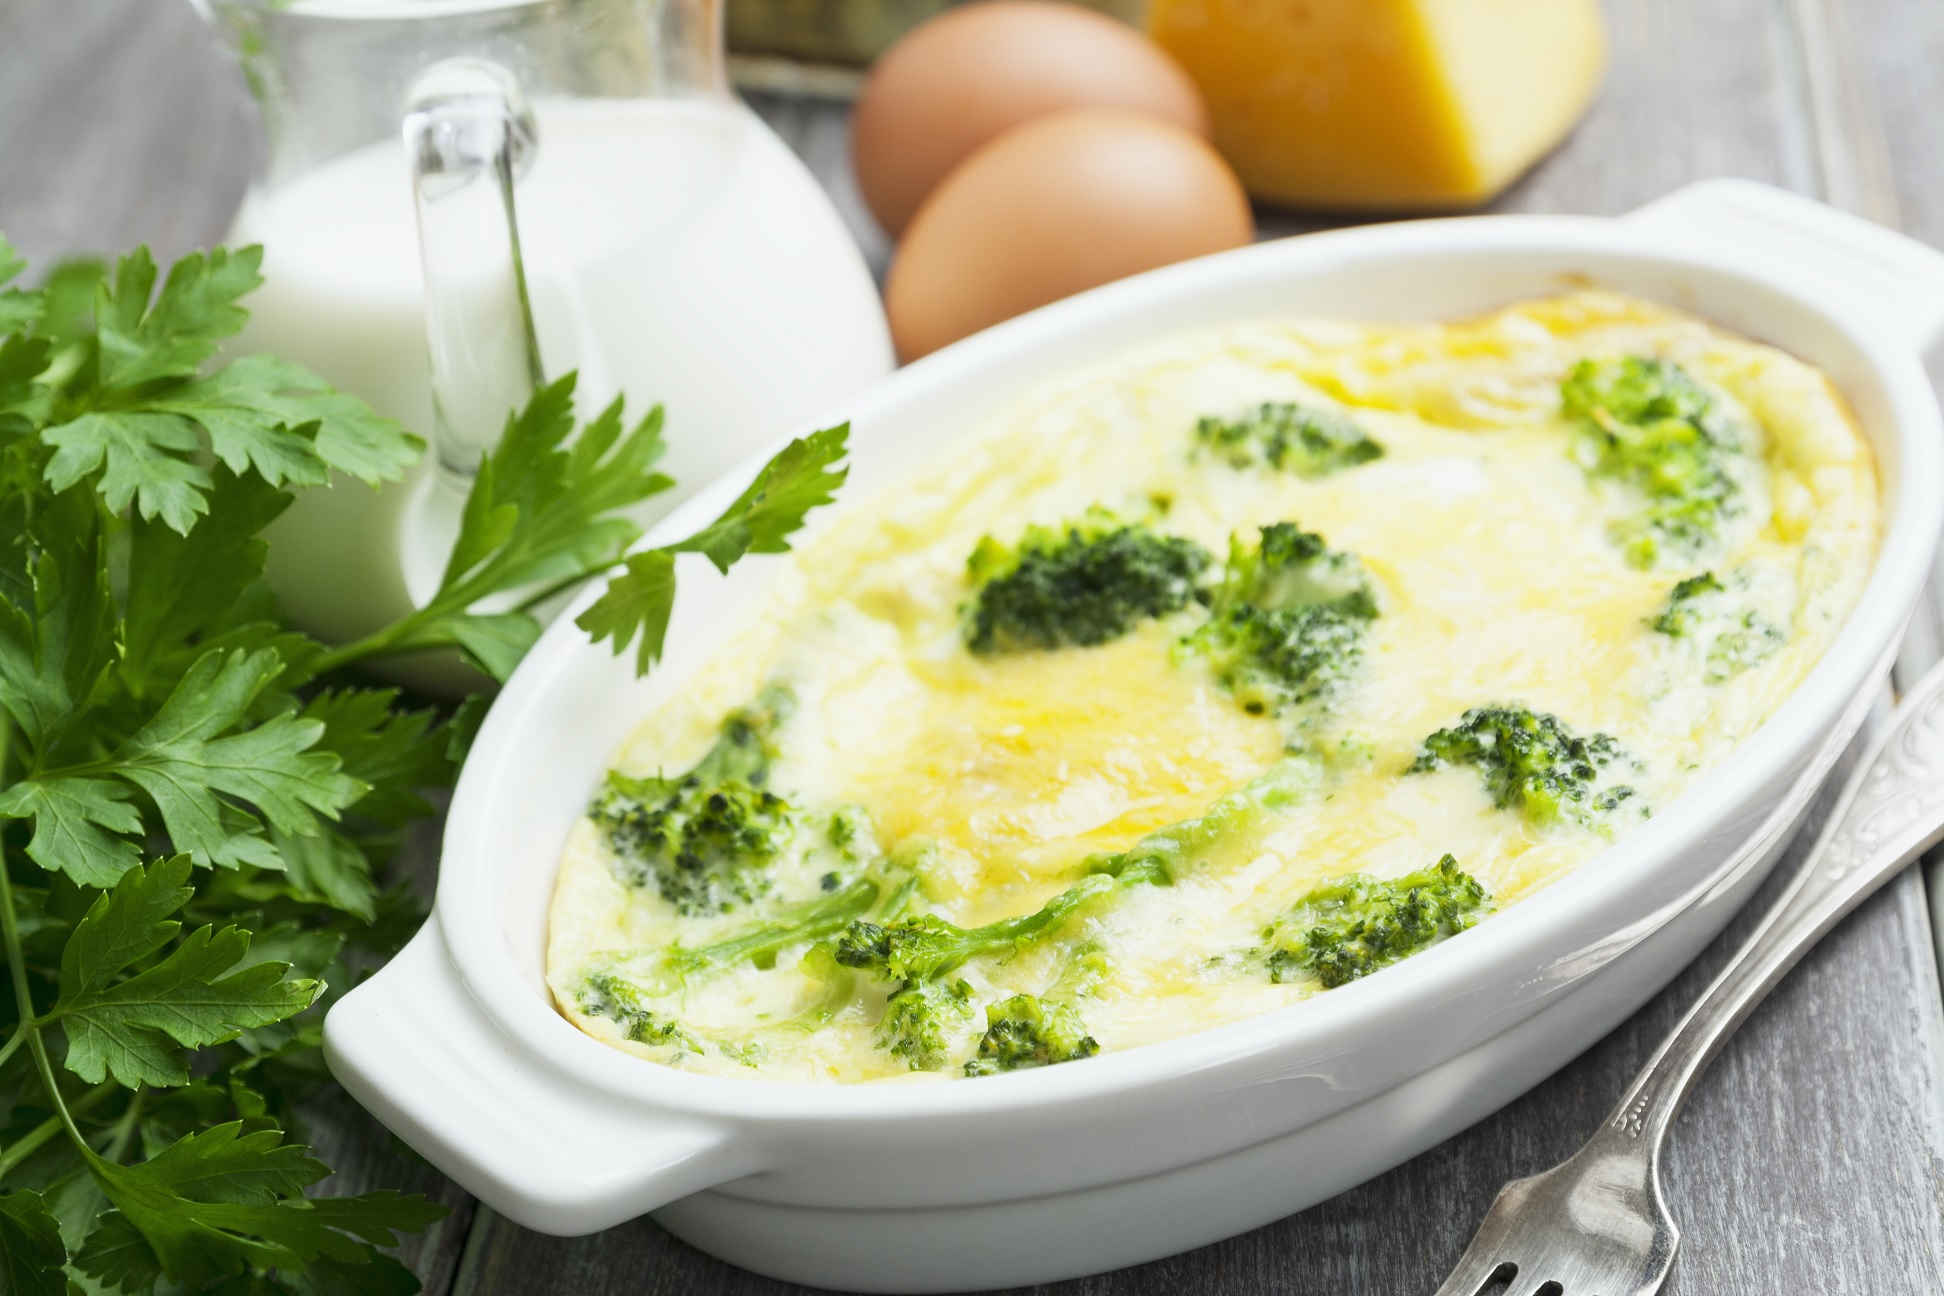 Baked Broccoli with Cheese